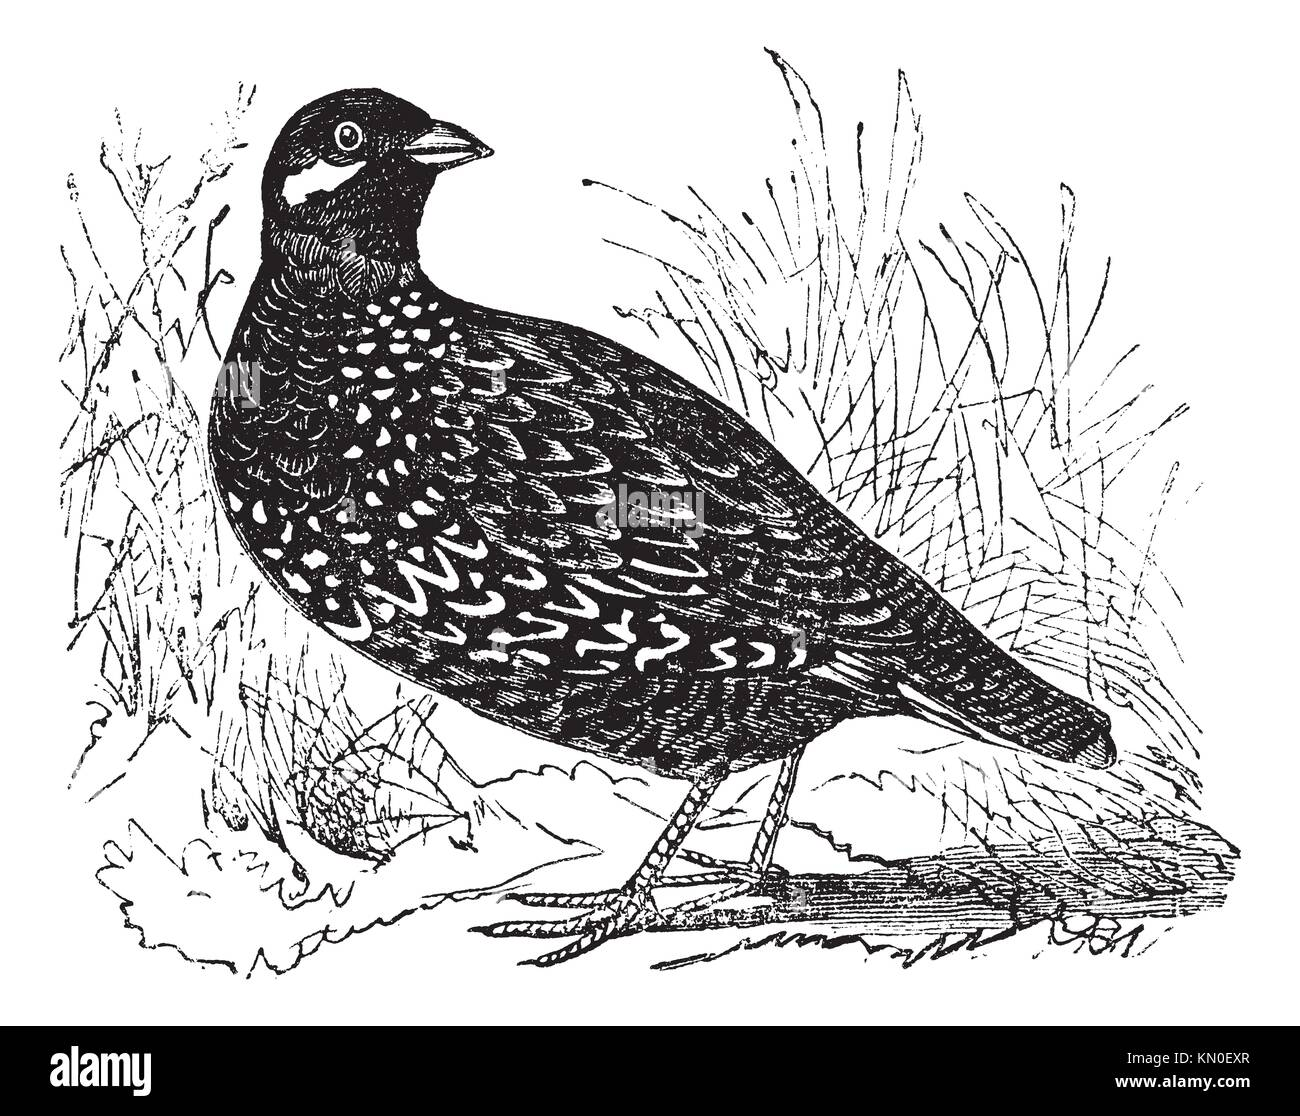 Black Francolin also known as Francolinus francolinus, gamebird, vintage engraved illustration of Black Francolin - Stock Image